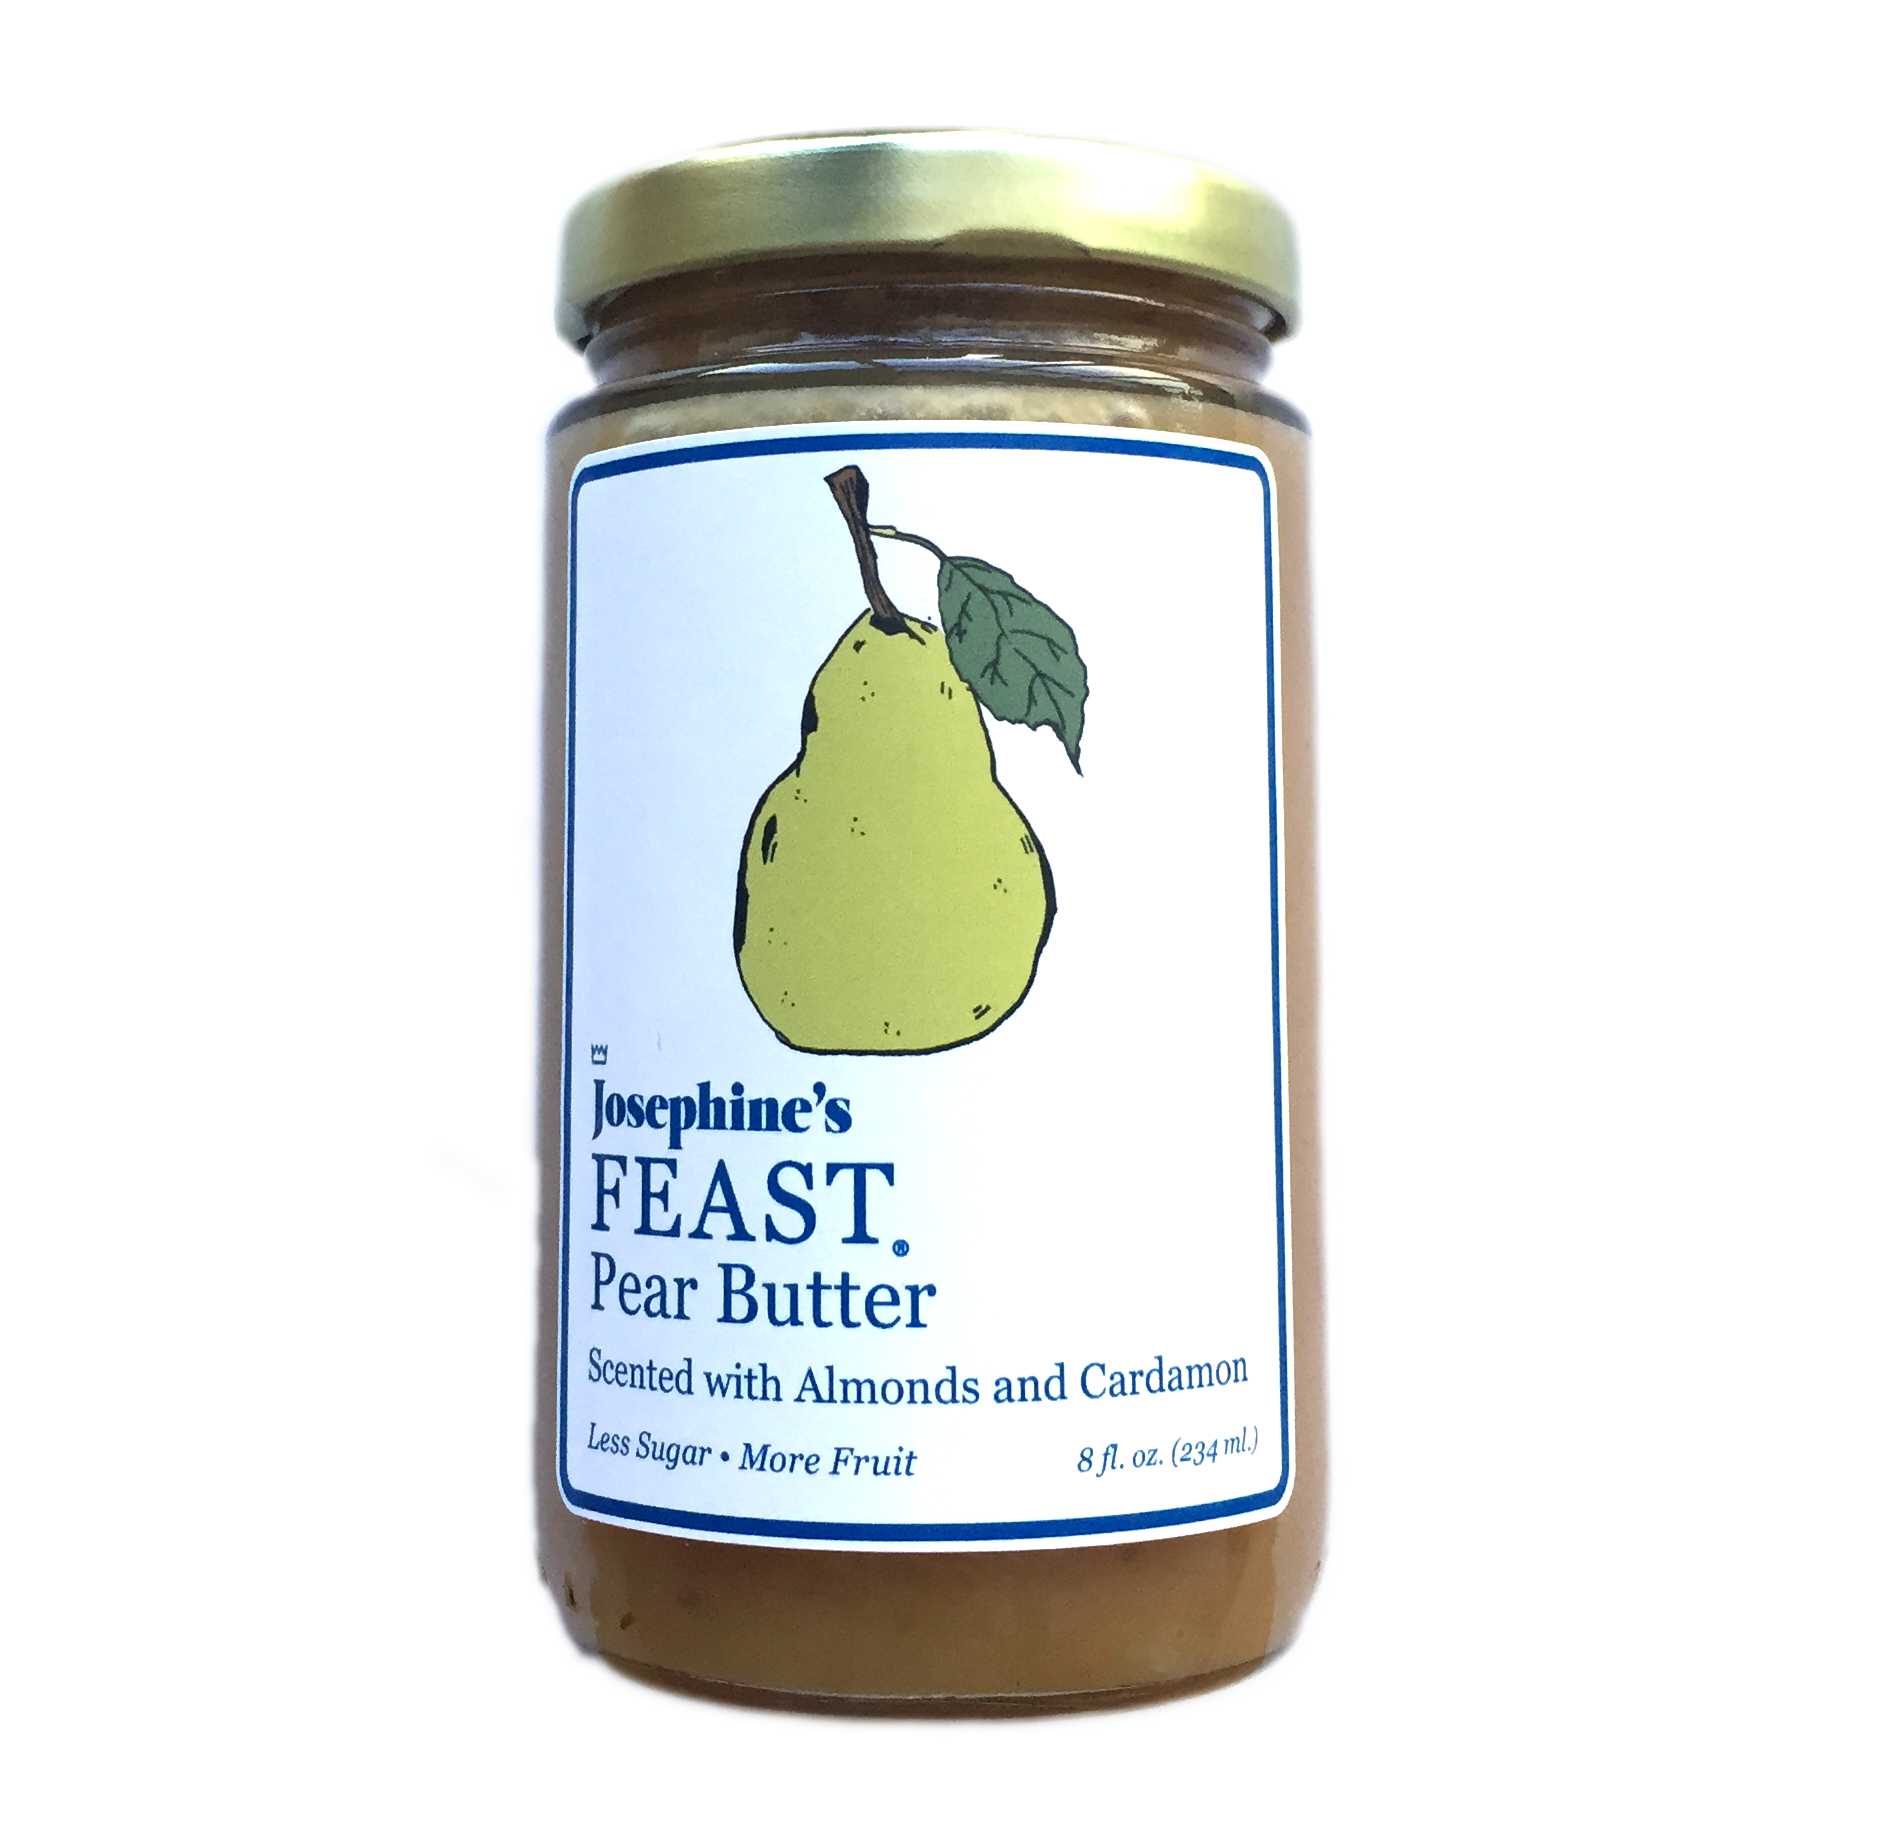 Pear Butter scented with Almond and Cardamon 00065